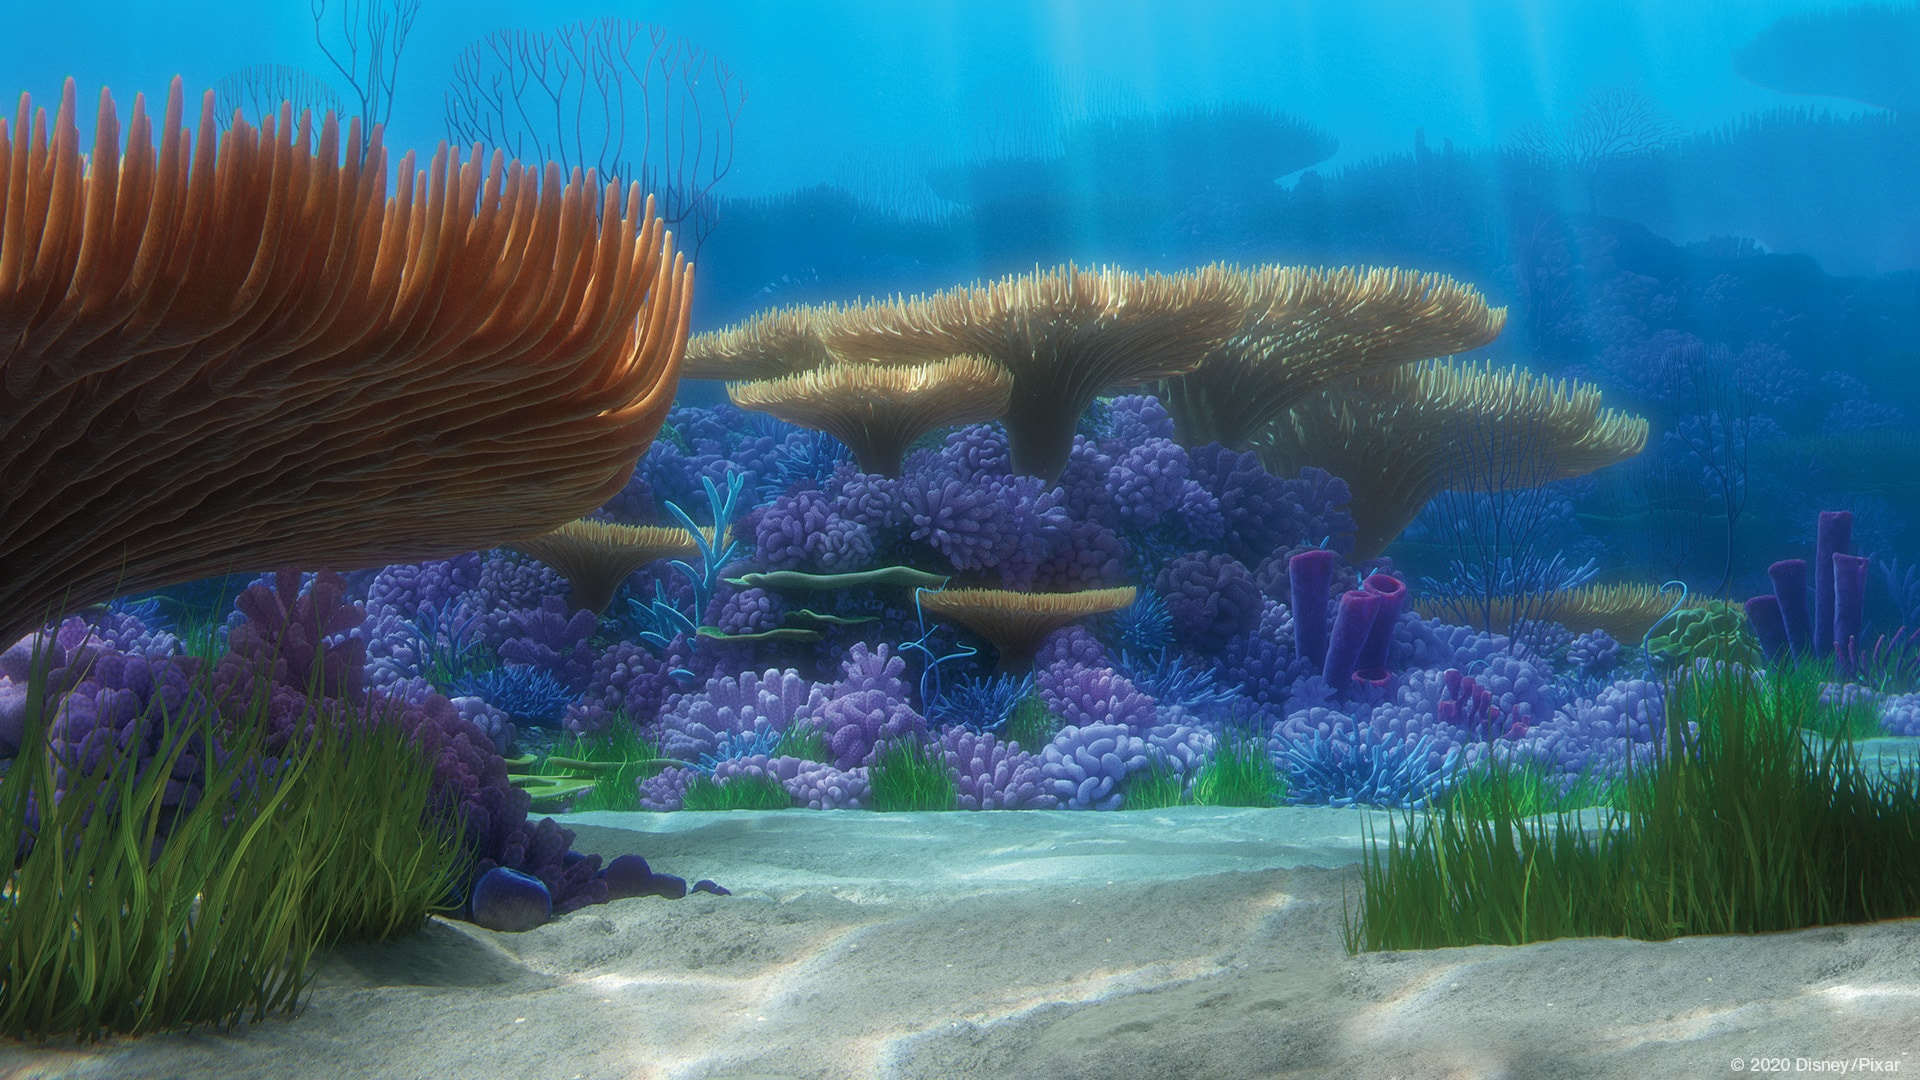 Finding Nemo video background